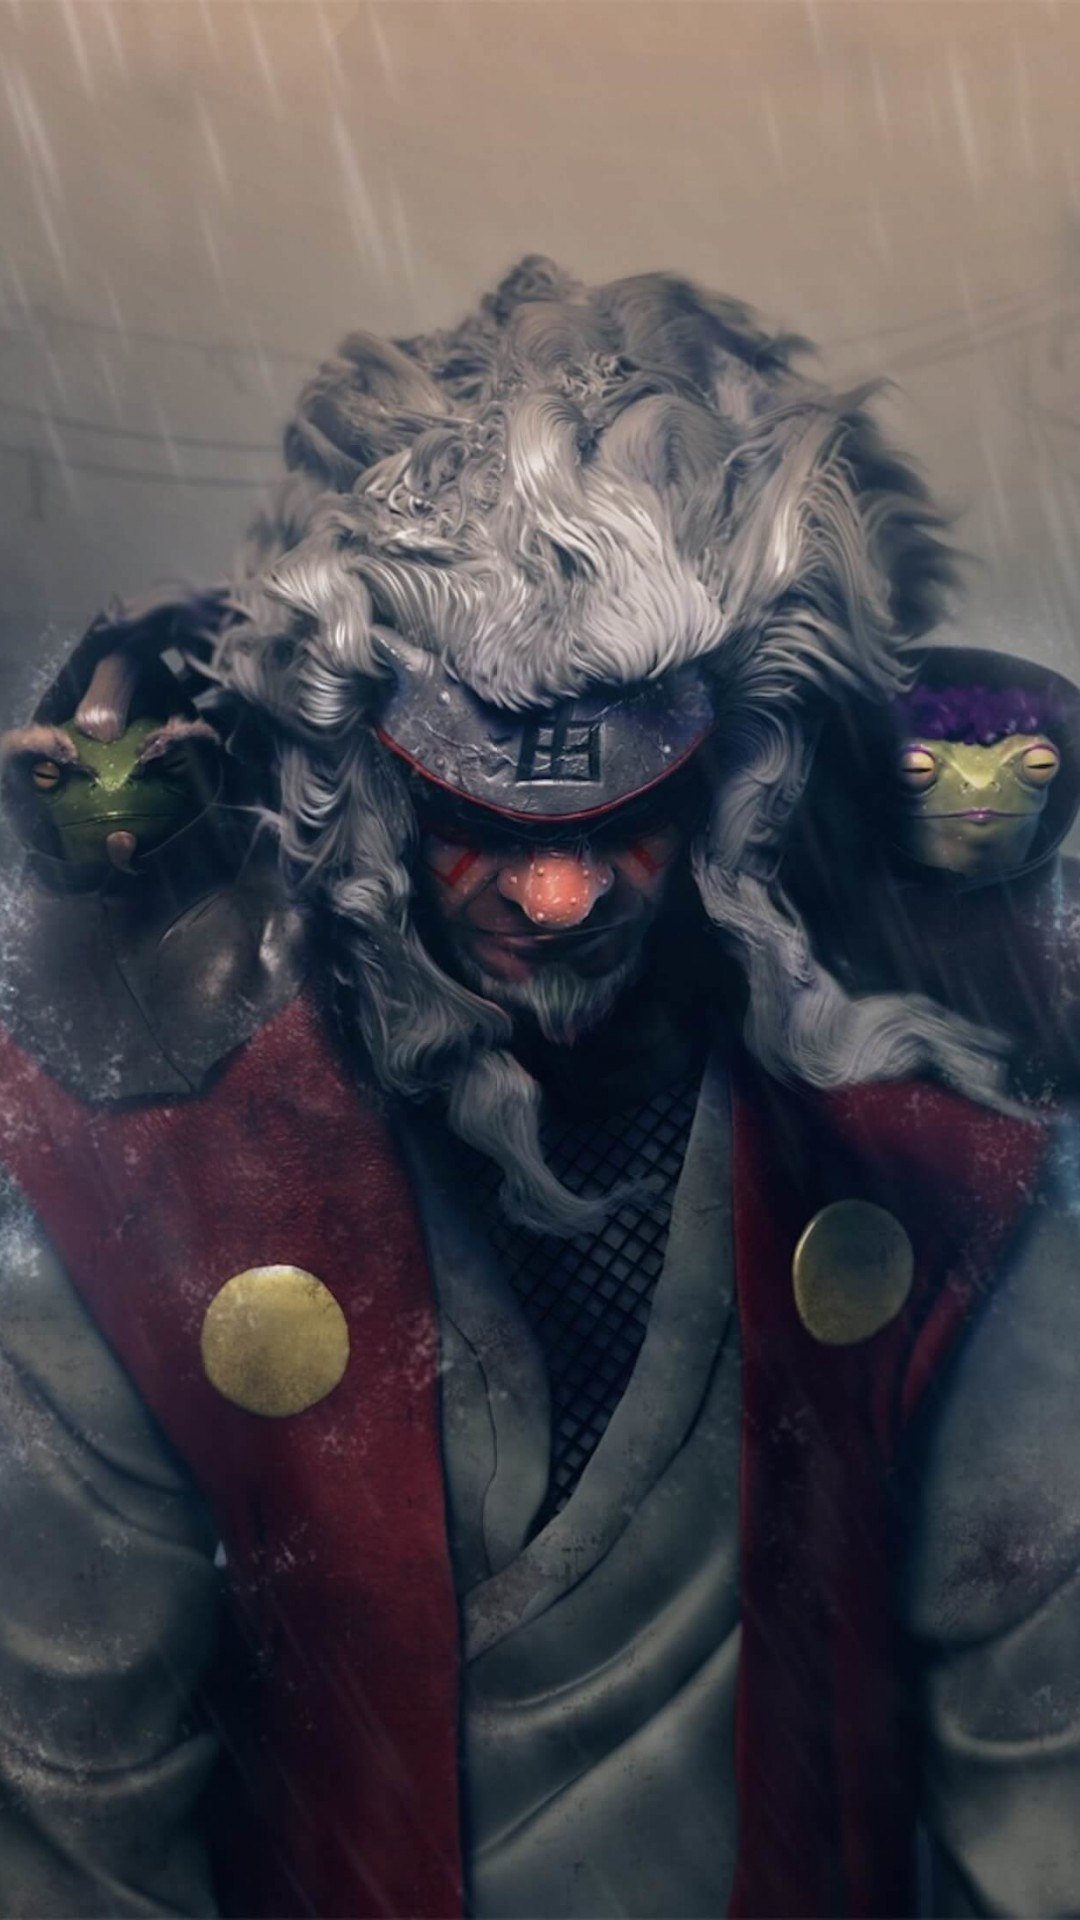 Jiraiya Fan Art - Naruto Wallpaper for Google Nexus 5